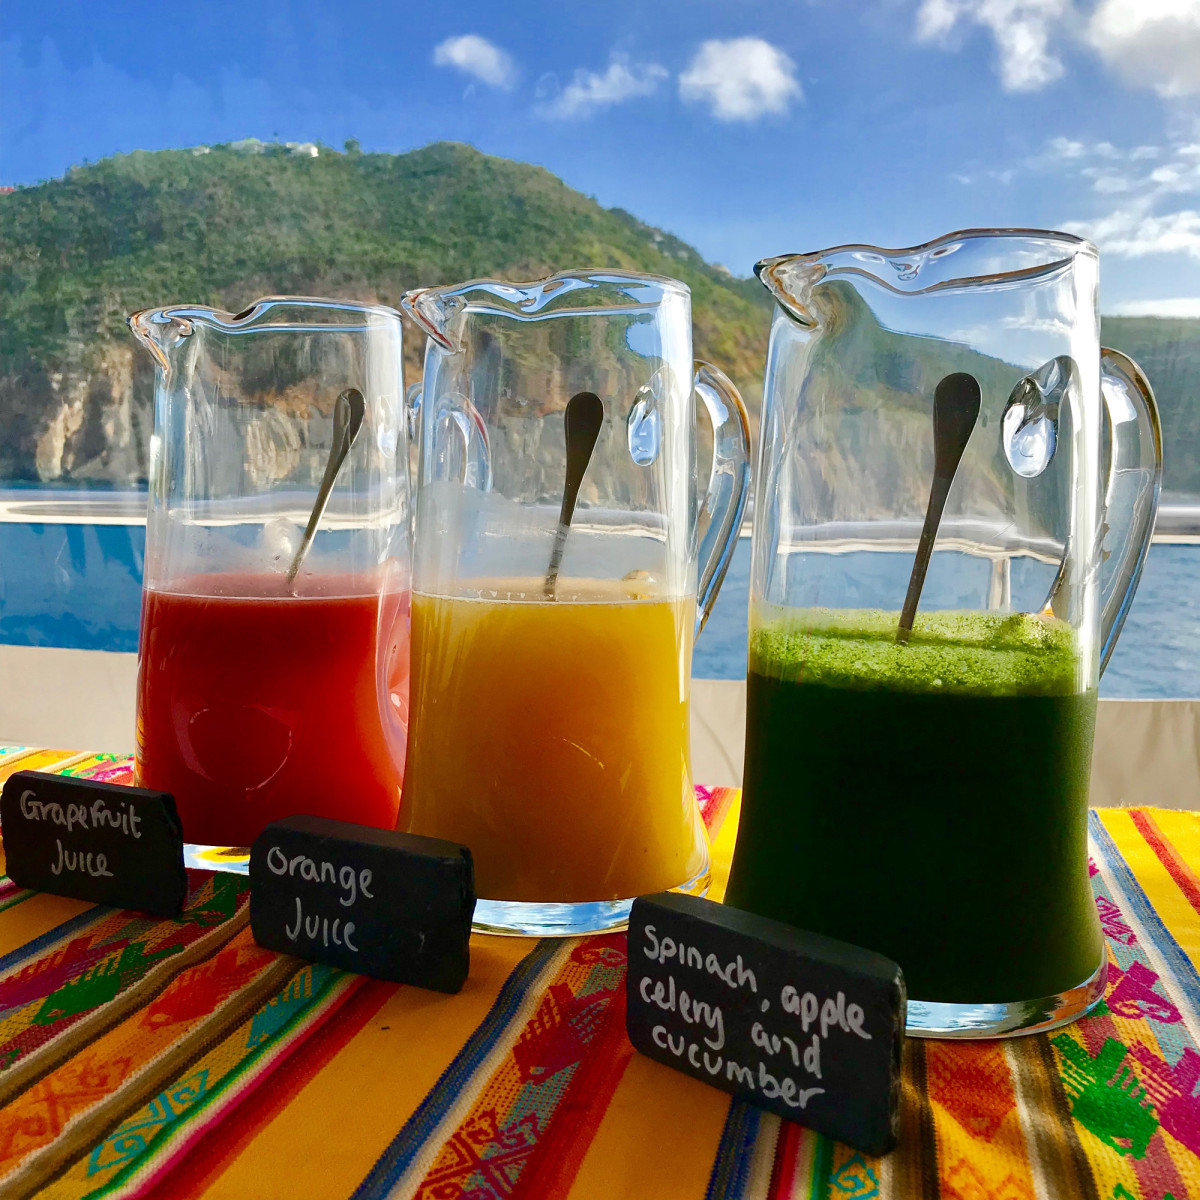 Fresh-made natural juices are a breakfast tradition aboard Dream. (photo by Andrew Parkinson)